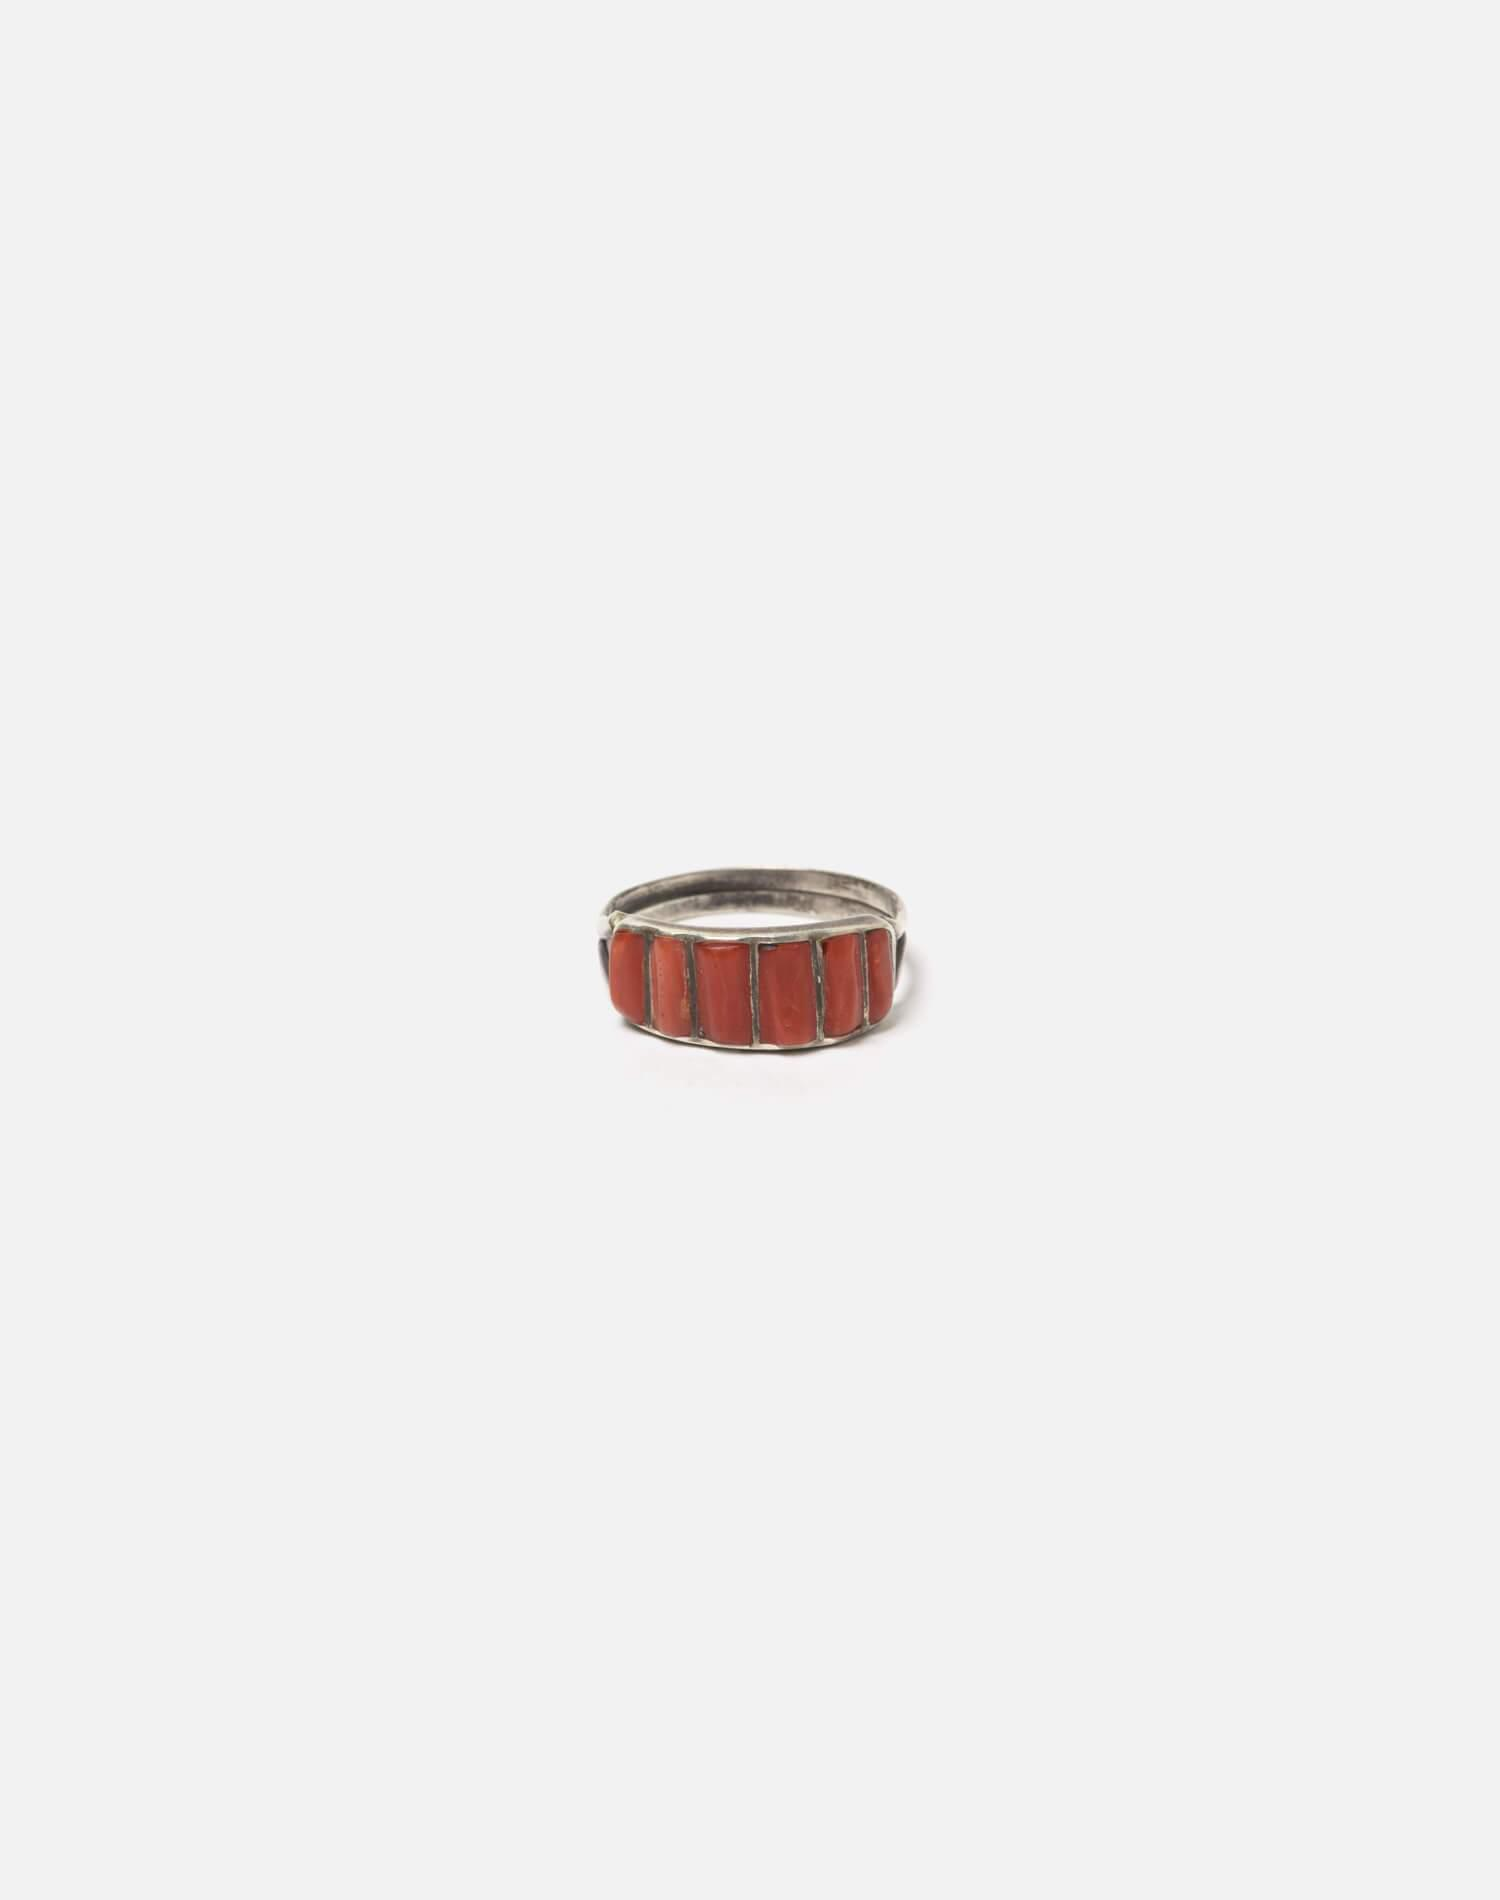 1950s Zuni Inlaid Coral And Sterling Ring - #100